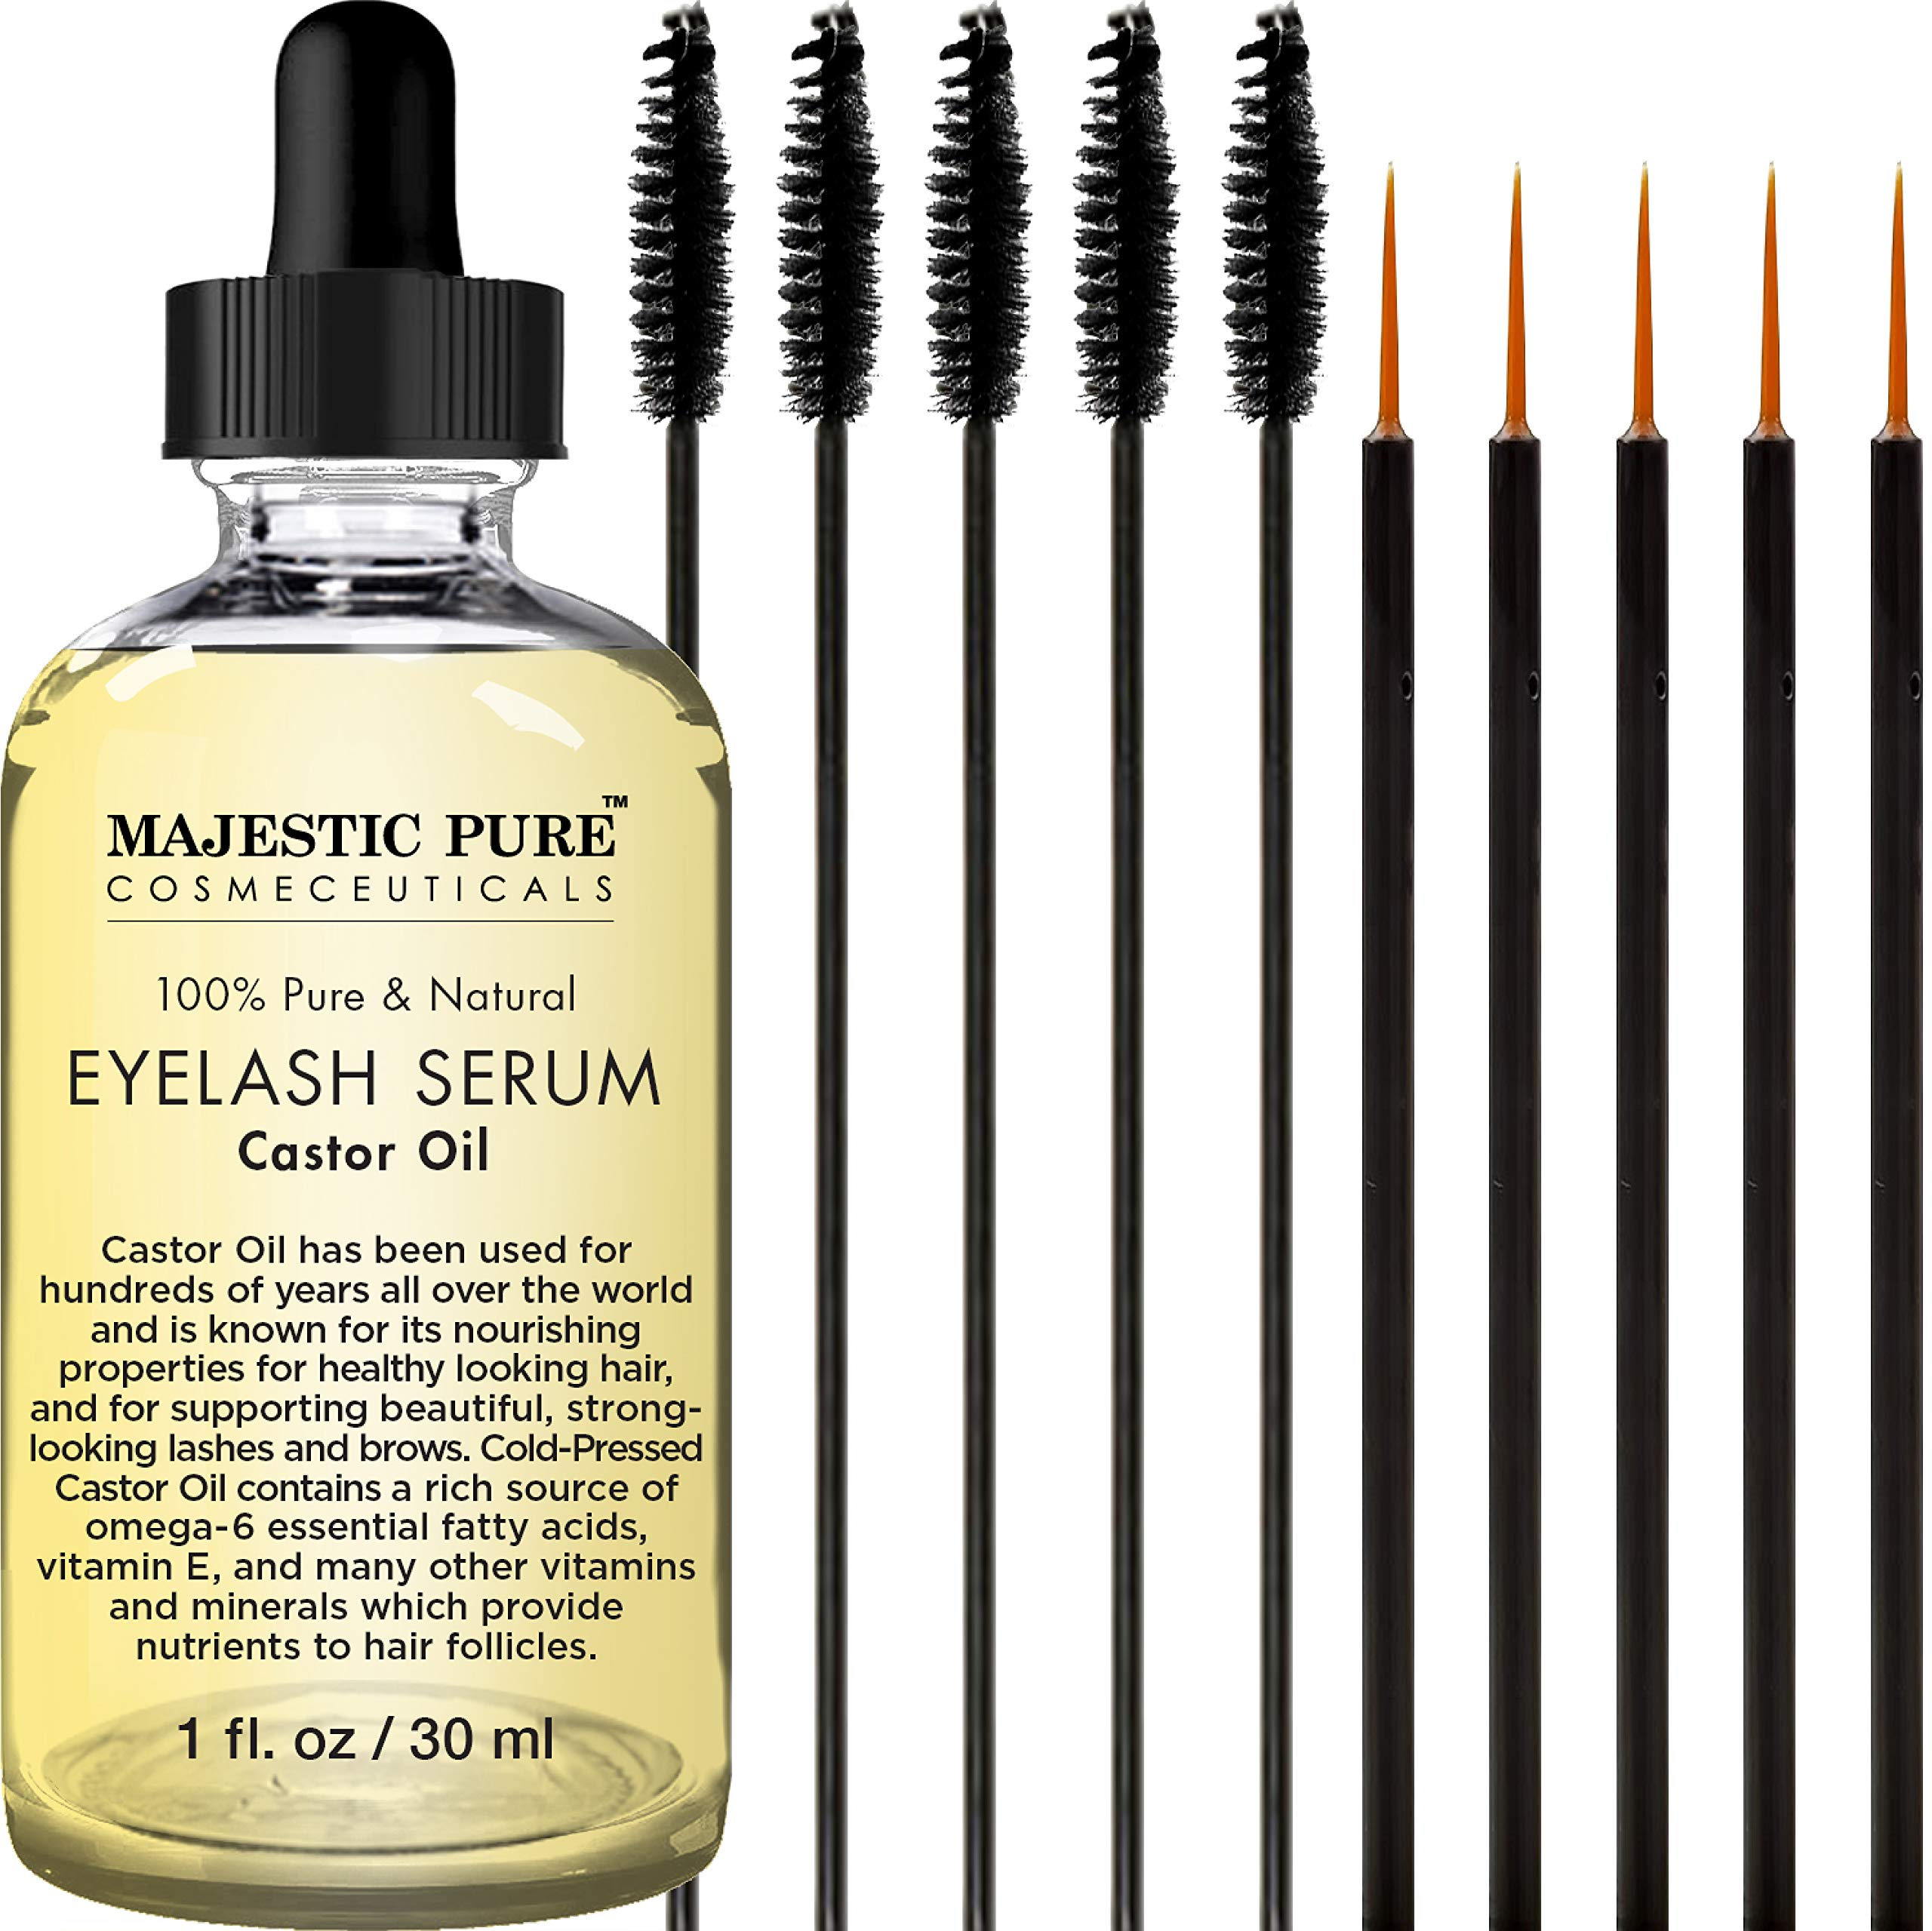 Majestic Pure - Majestic Pure Castor Oil Eyelash Serum, Promotes Natural Eyebrows & Eyelash Growth, Pure and Natural, Free Set of Mascara Brush and Eyeliner Applicator - 1 fl oz